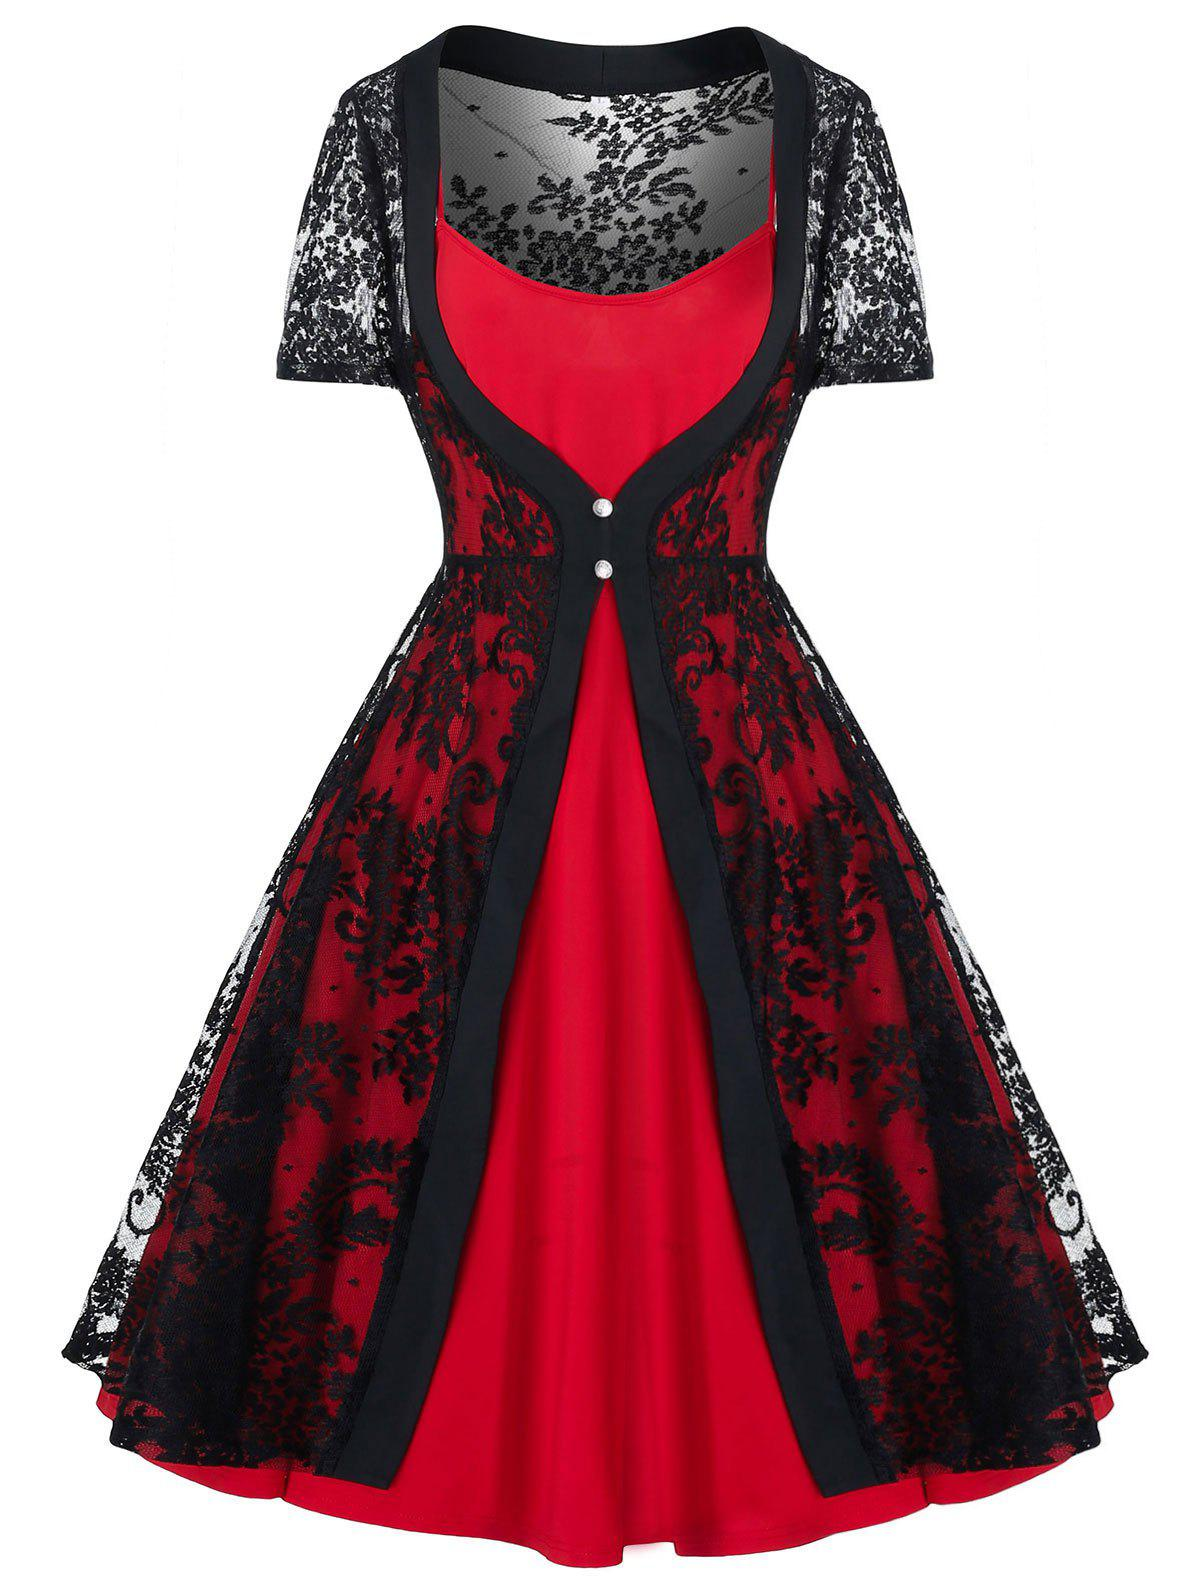 Plus Size Vintage Pin Up Dress With Lace Cardigan Set - RED 2X